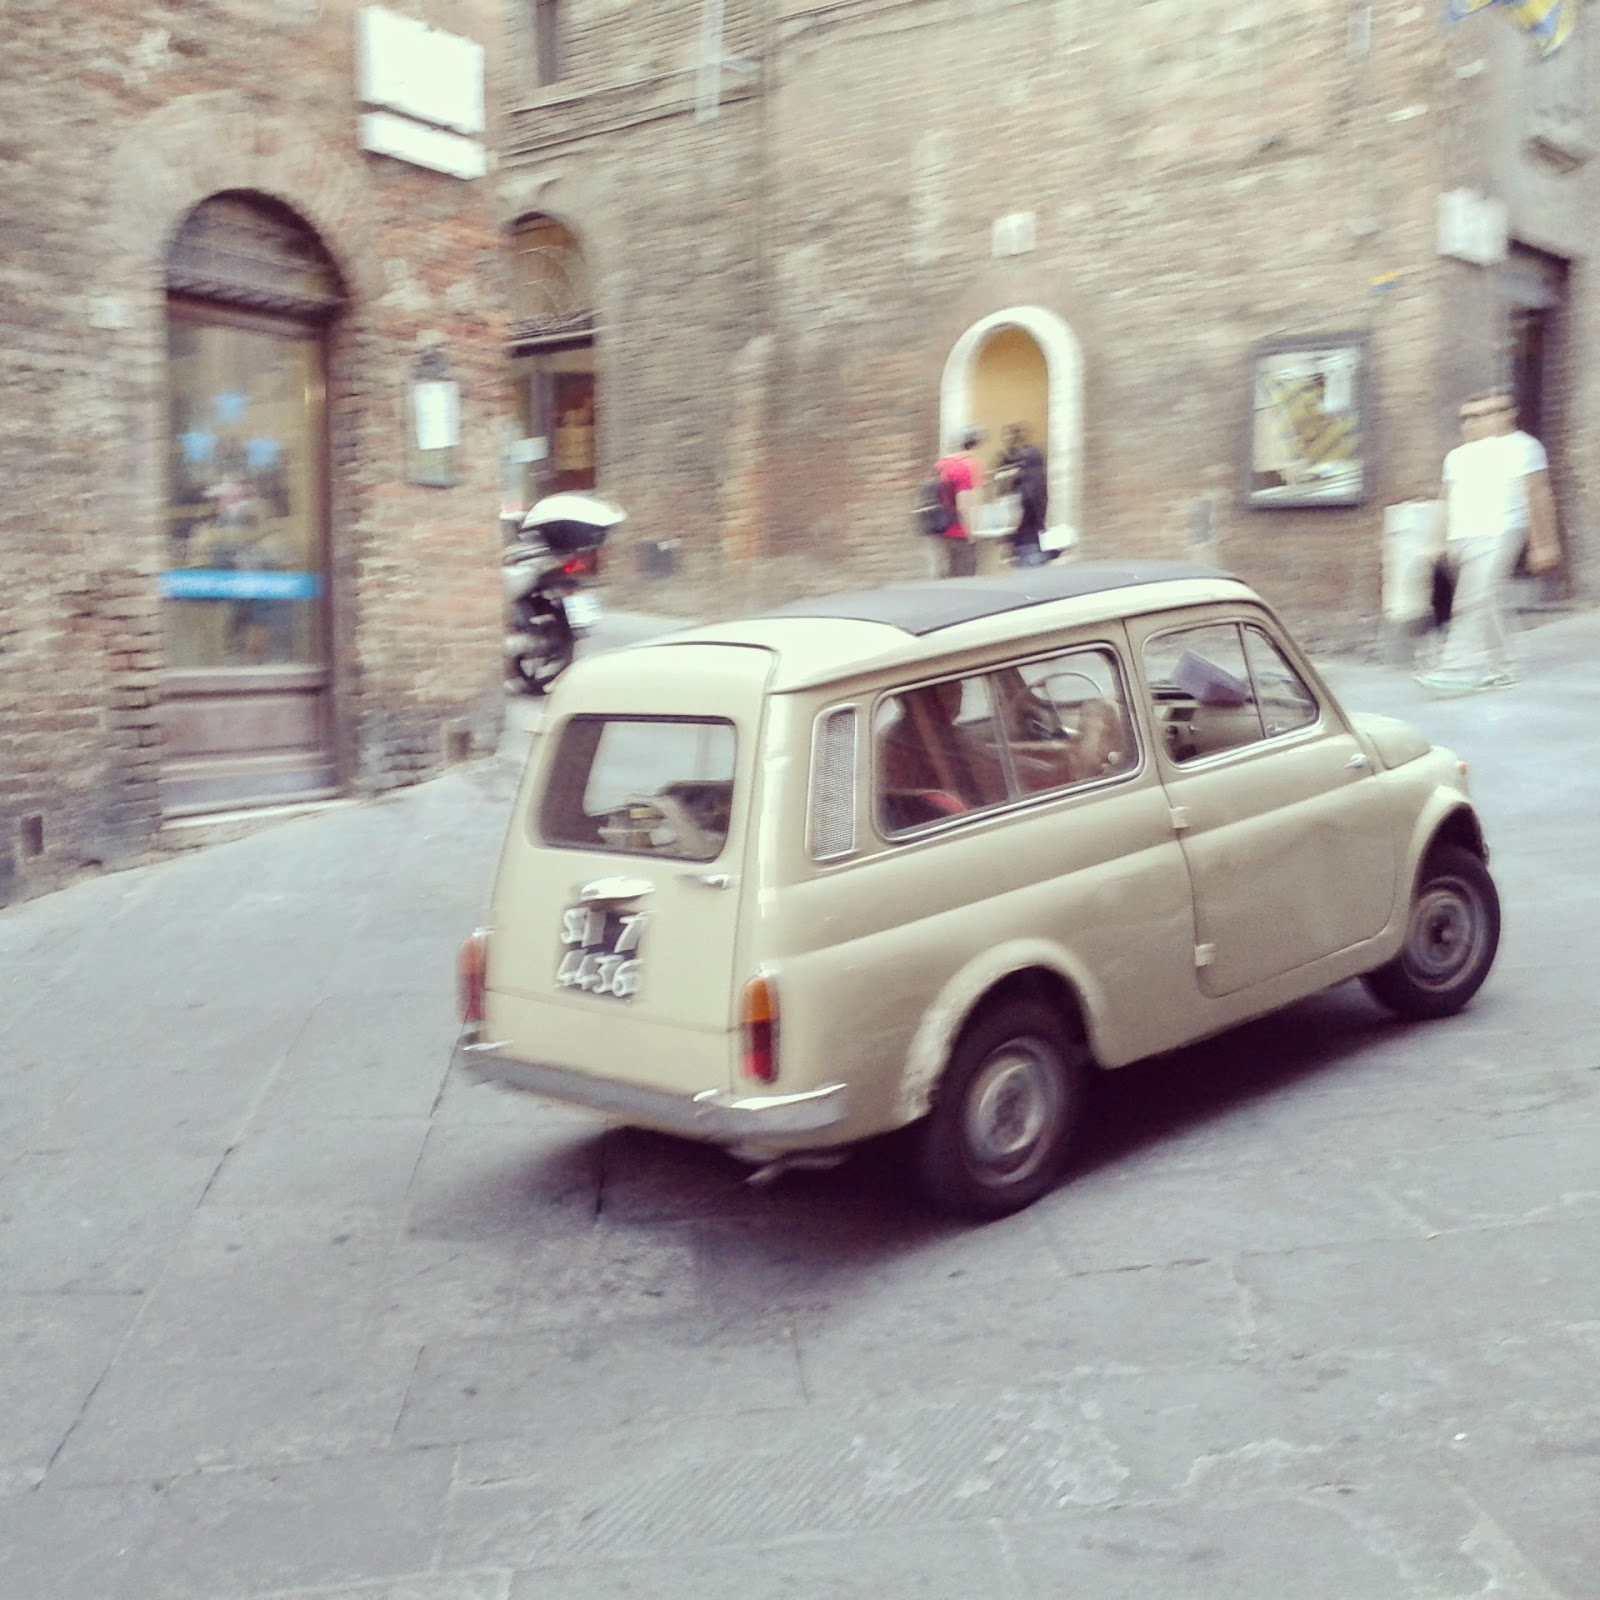 Fiat spotting in Siena's backstreets